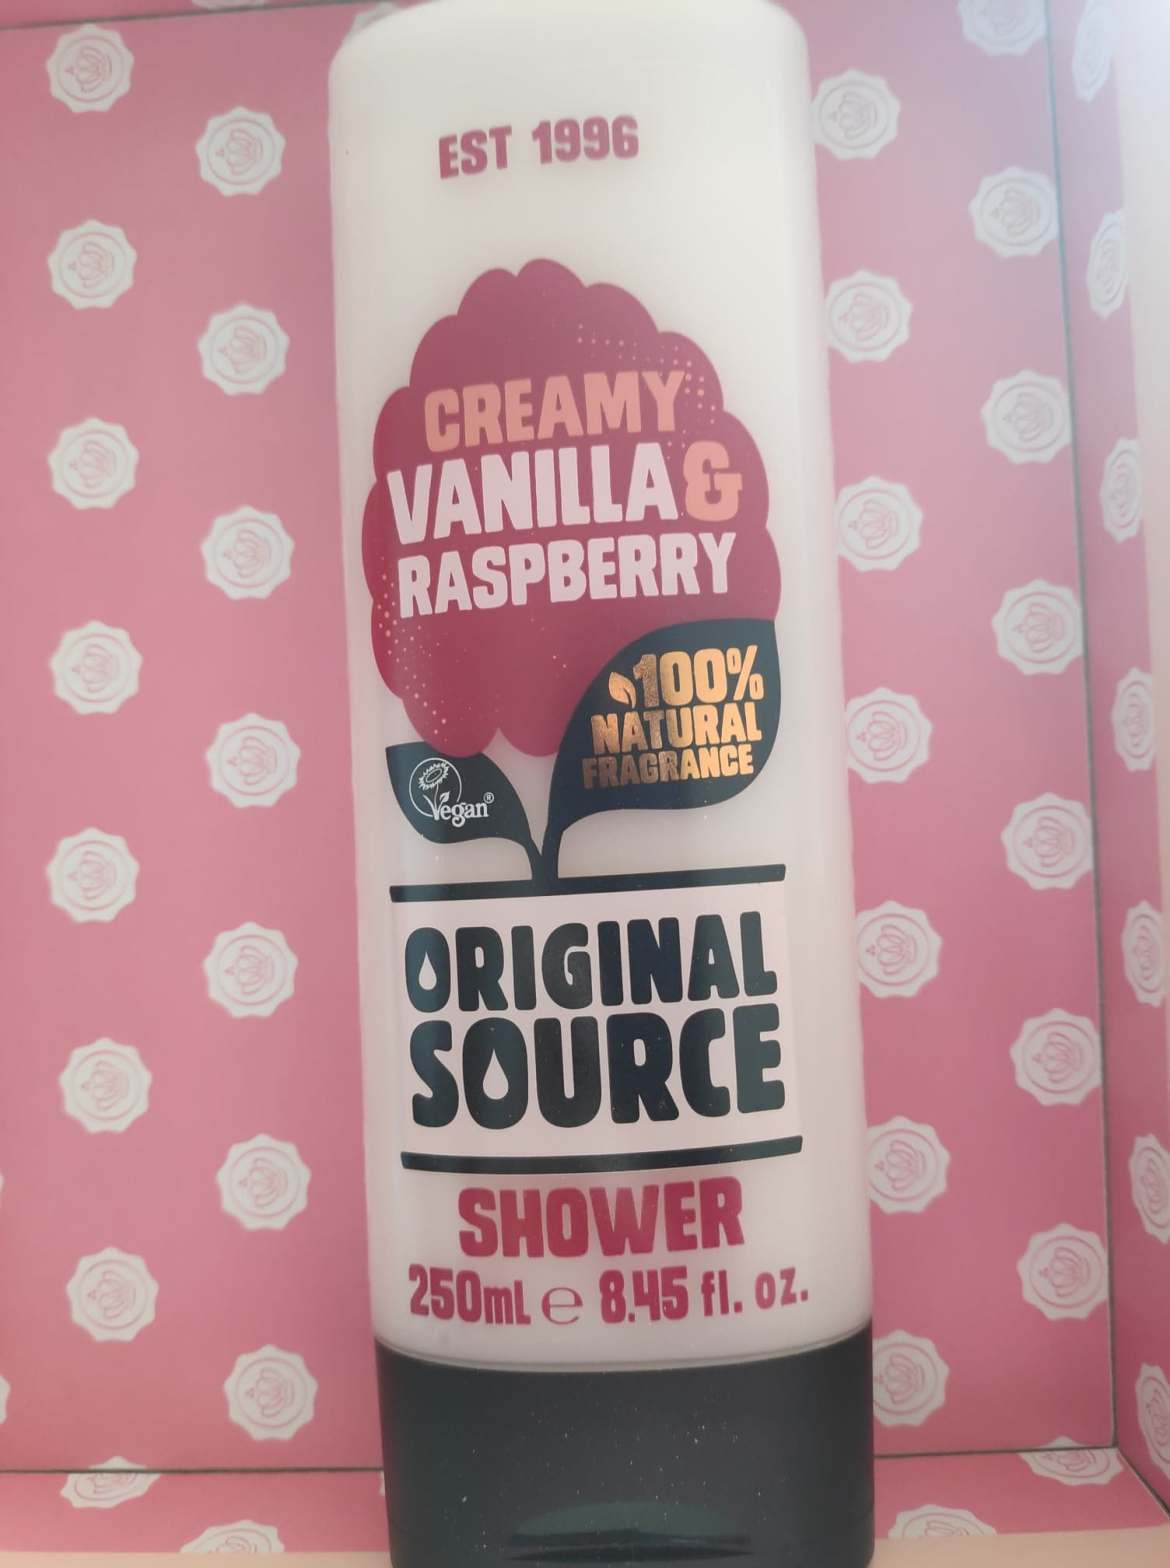 Original Source 100% natural Creamy Vanilla and Raspberry shower cream